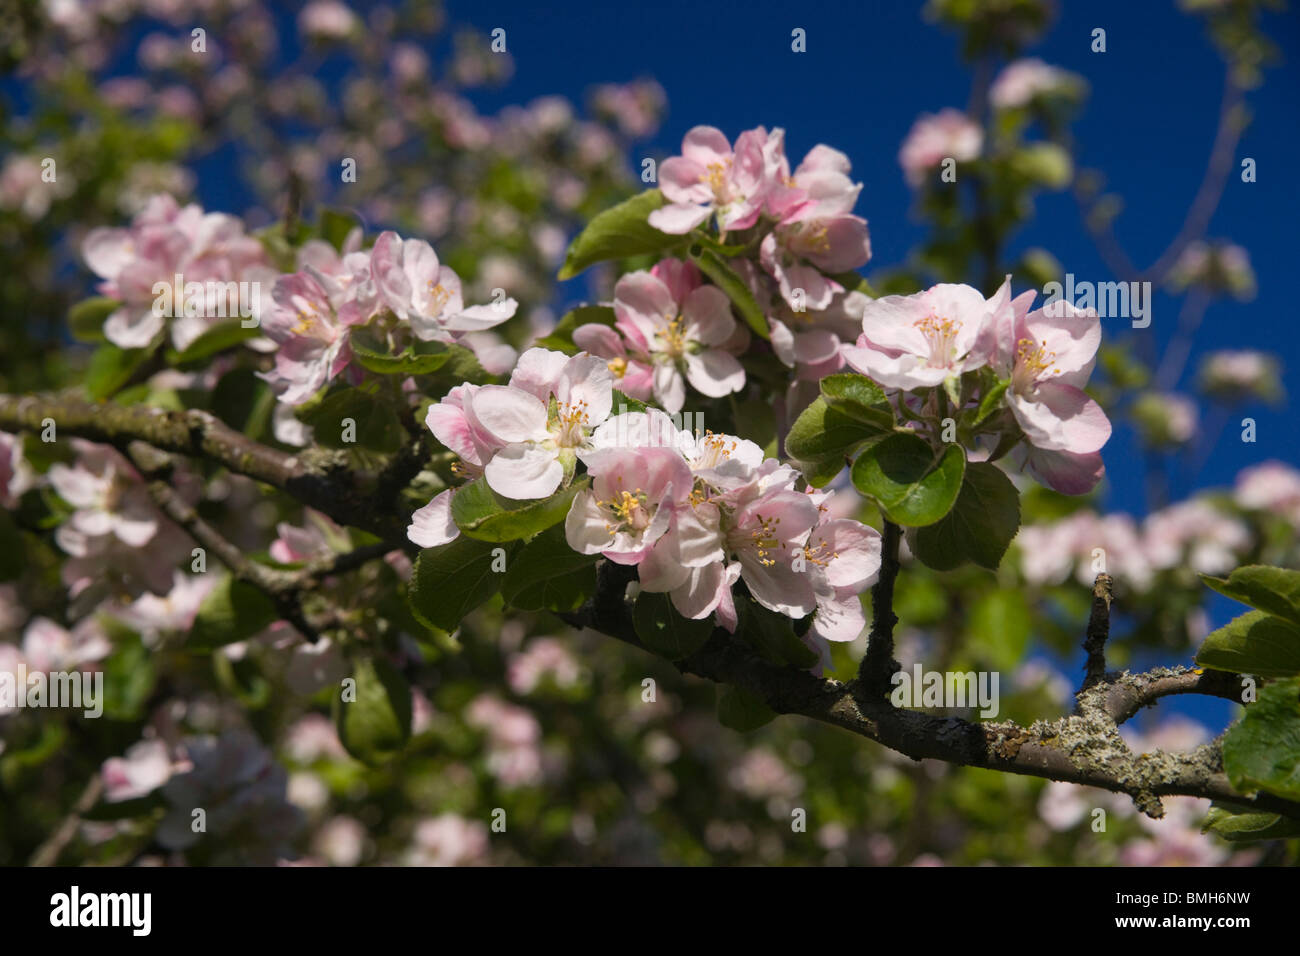 Pink and white blossom on a Granny Smith apple tree in Scotland in springtime Stock Photo